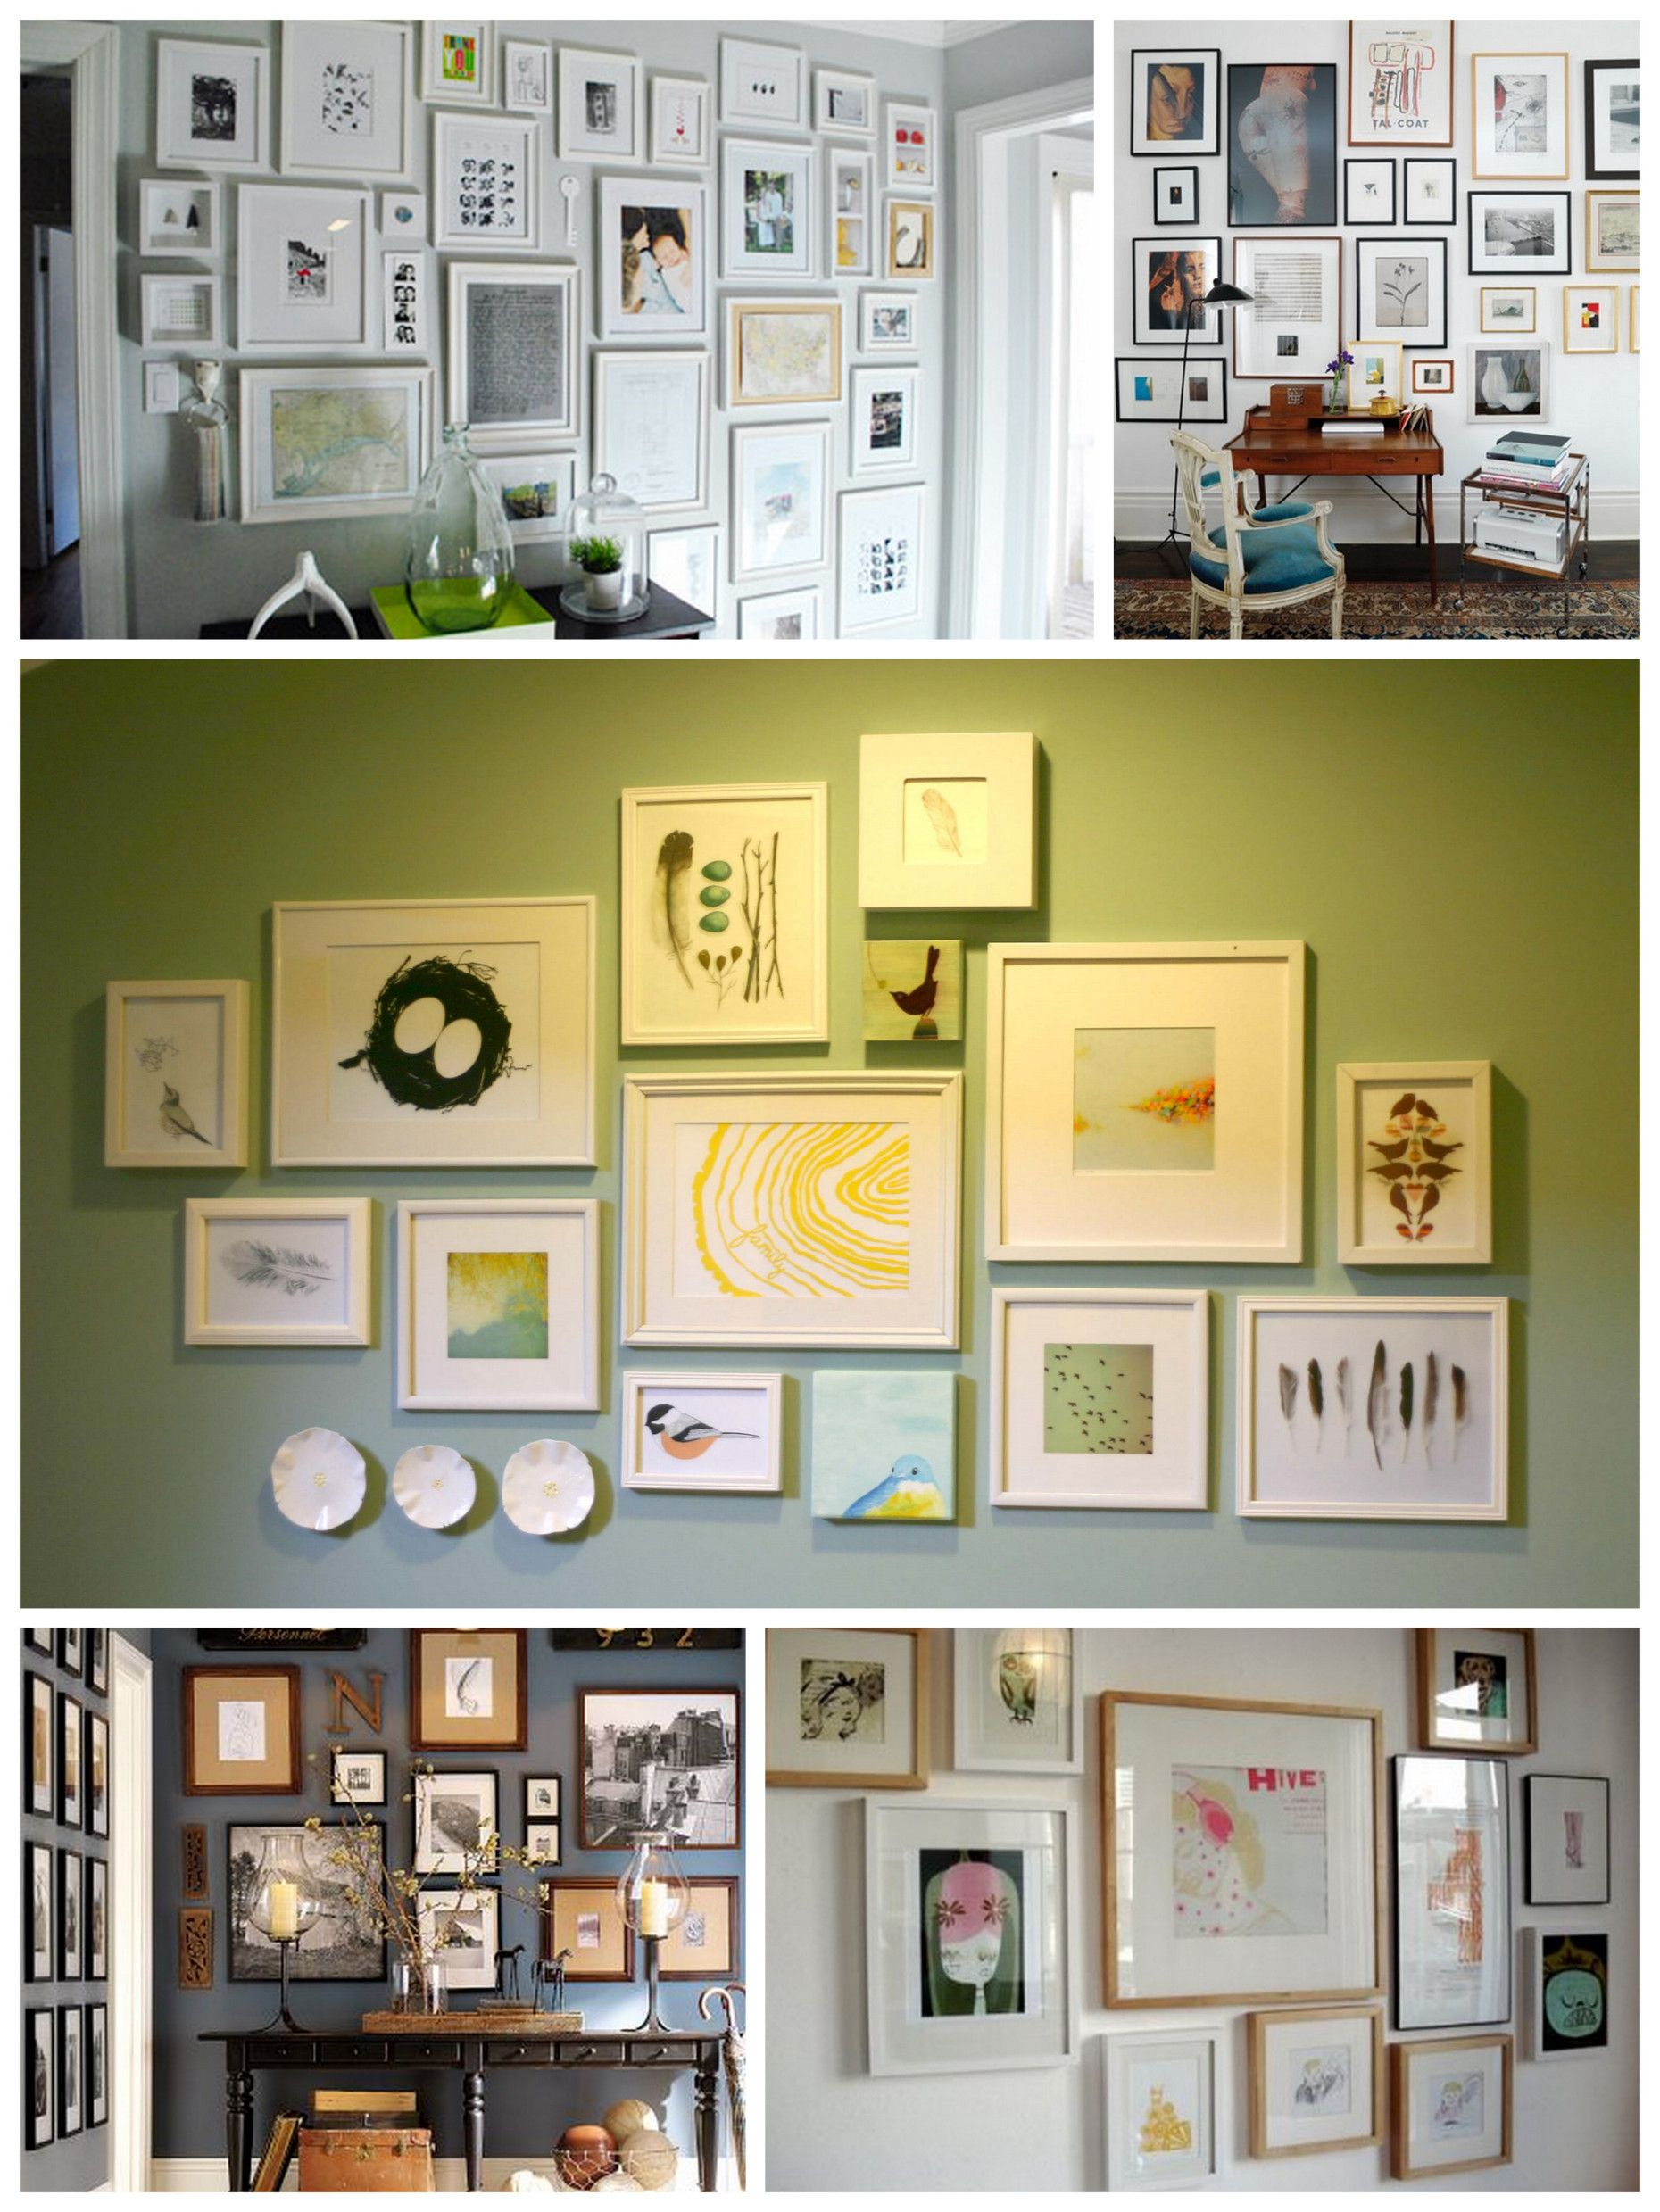 Gallery Wall Collage | Framing and Picture Collections | Pinterest ...